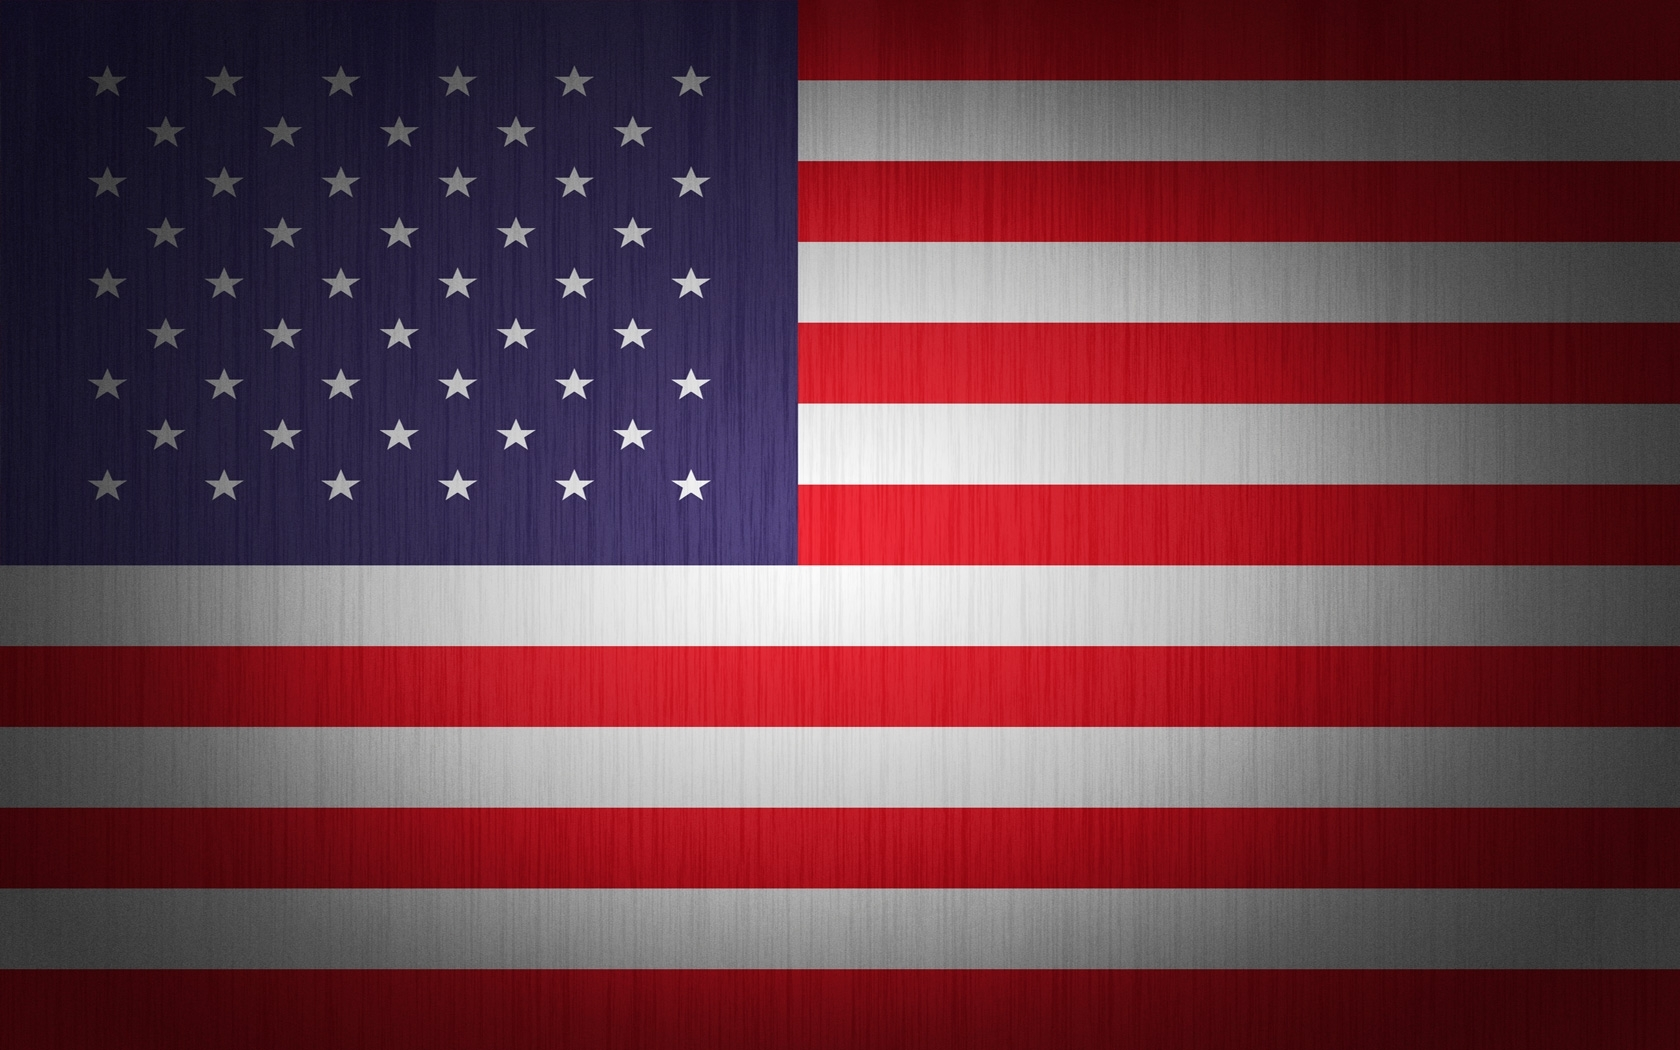 10 top usa flag hd wallpaper full hd 1920×1080 for pc background